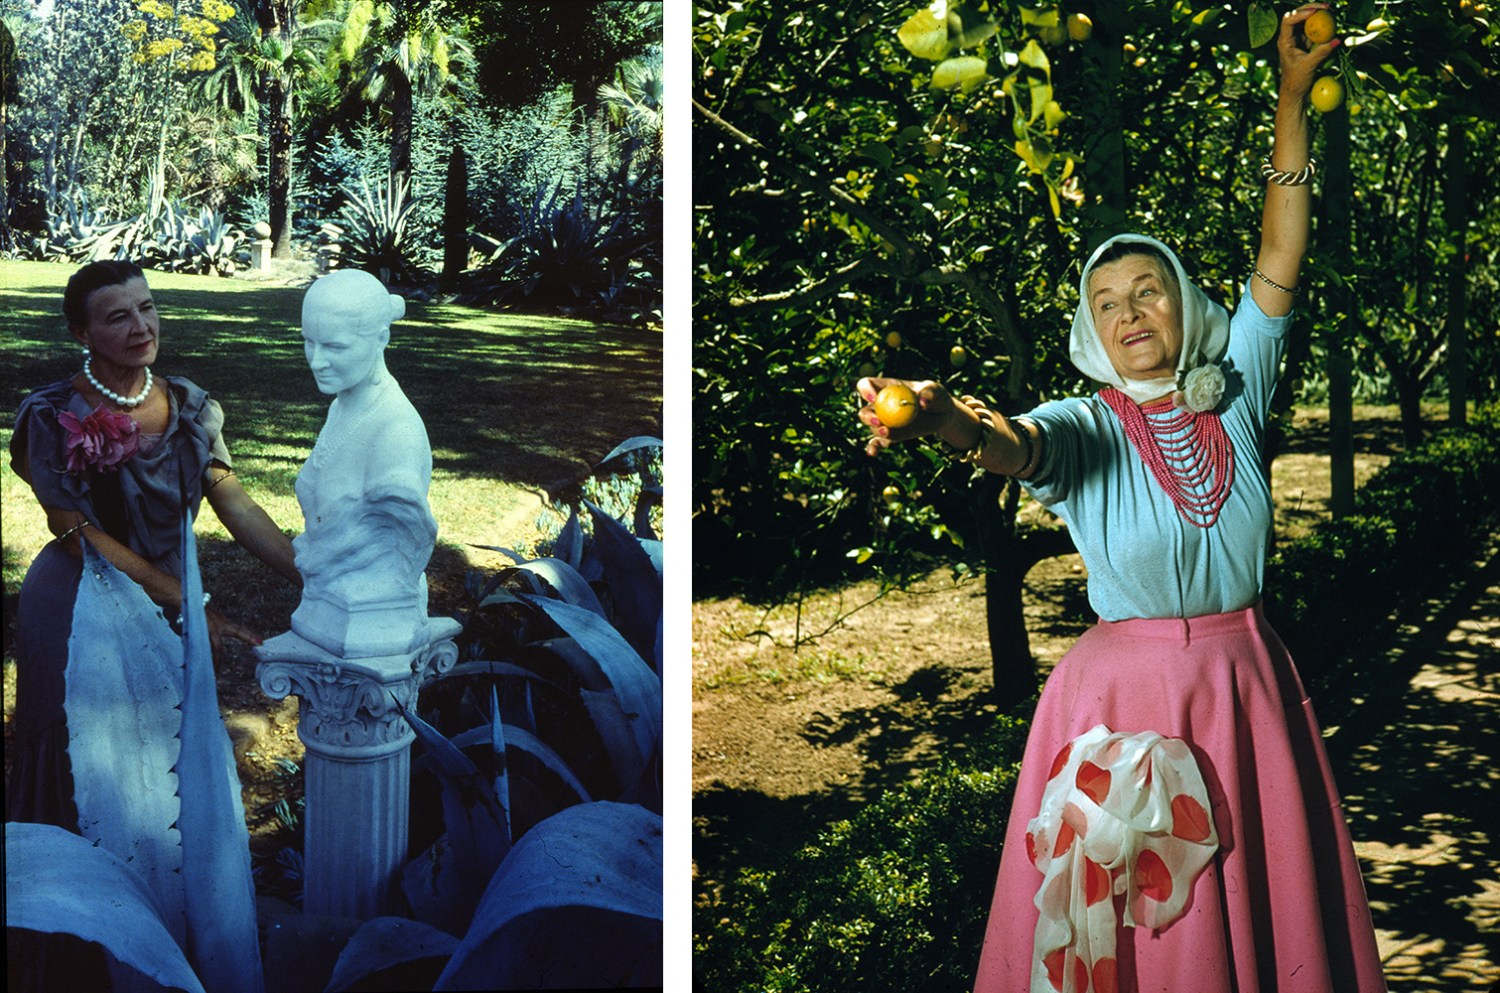 Ganna Walska in the blue garden 1958. Ganna Walska picking lemons, photo: courtesy Ganna Walska Lotusland